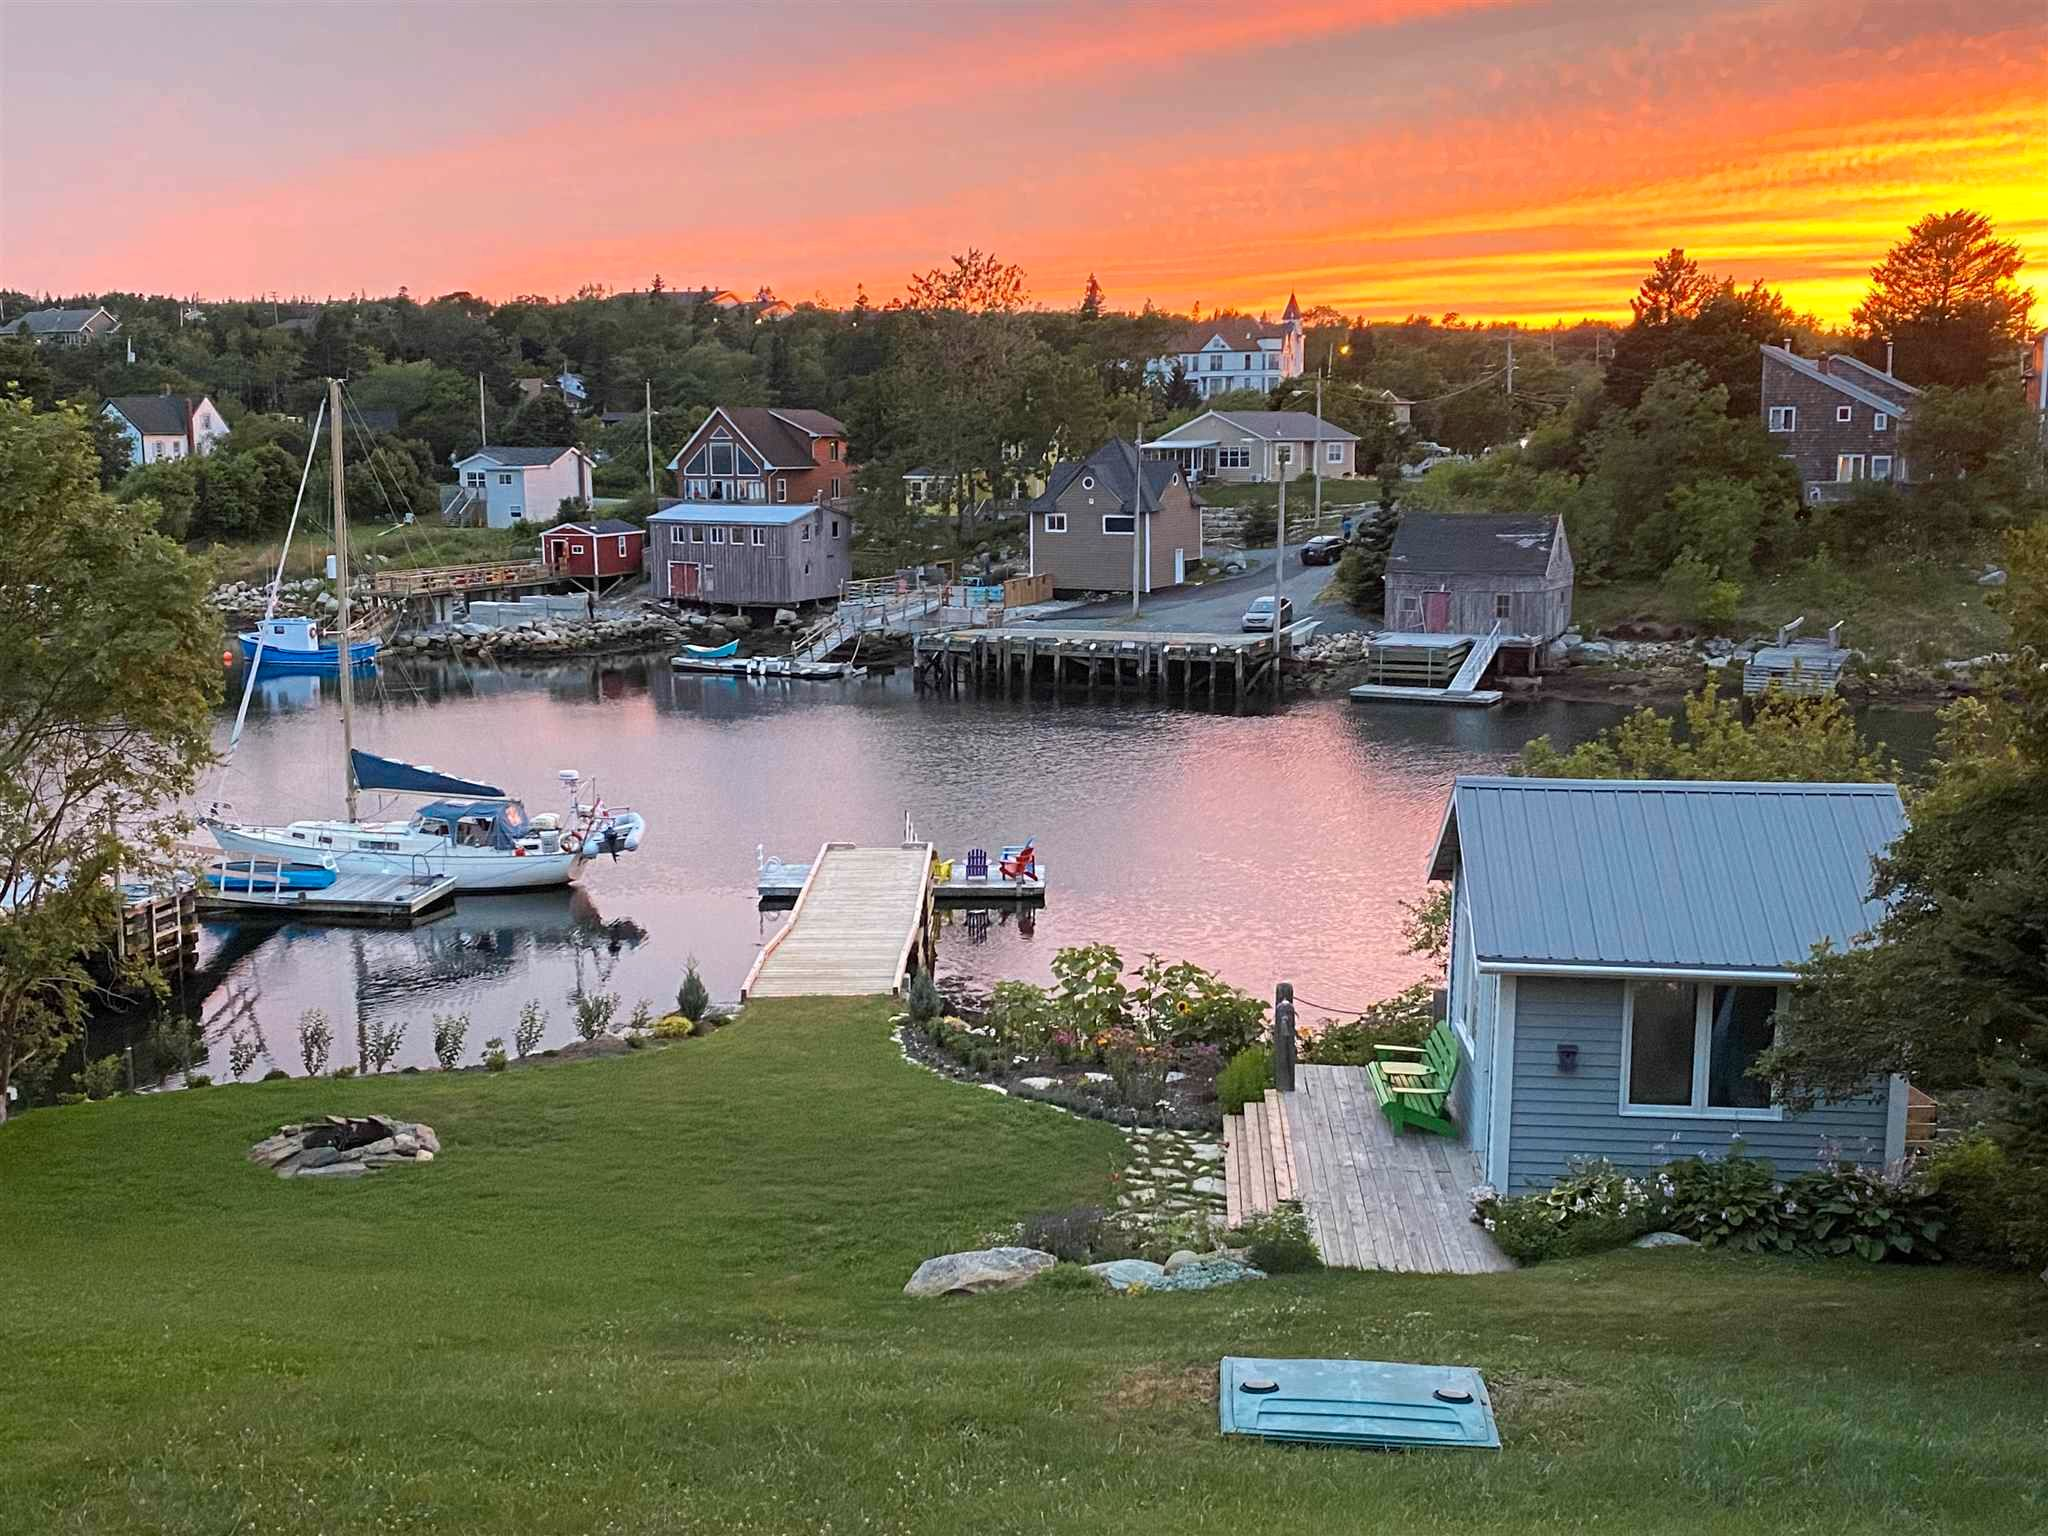 Photo 5: Photos: 63 Shore Road in Herring Cove: 8-Armdale/Purcell`s Cove/Herring Cove Residential for sale (Halifax-Dartmouth)  : MLS®# 202107484